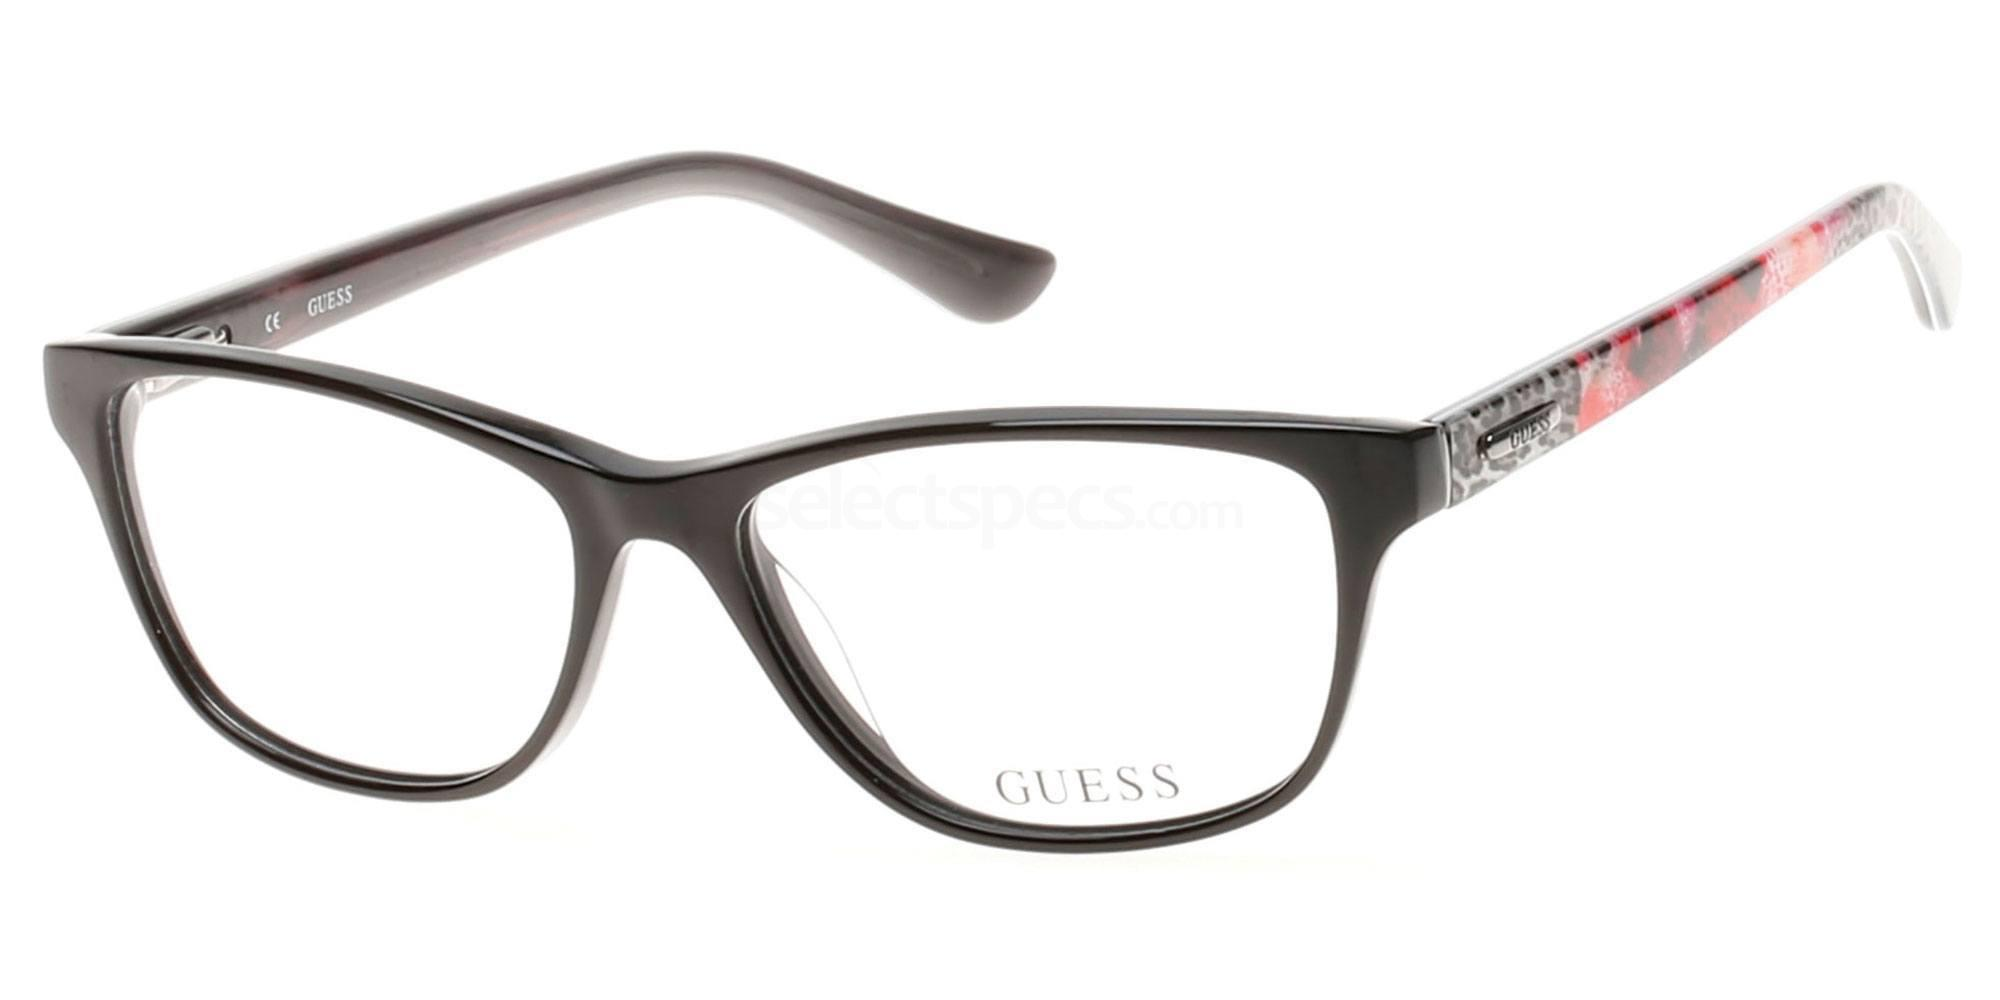 001 GU2513 Glasses, Guess